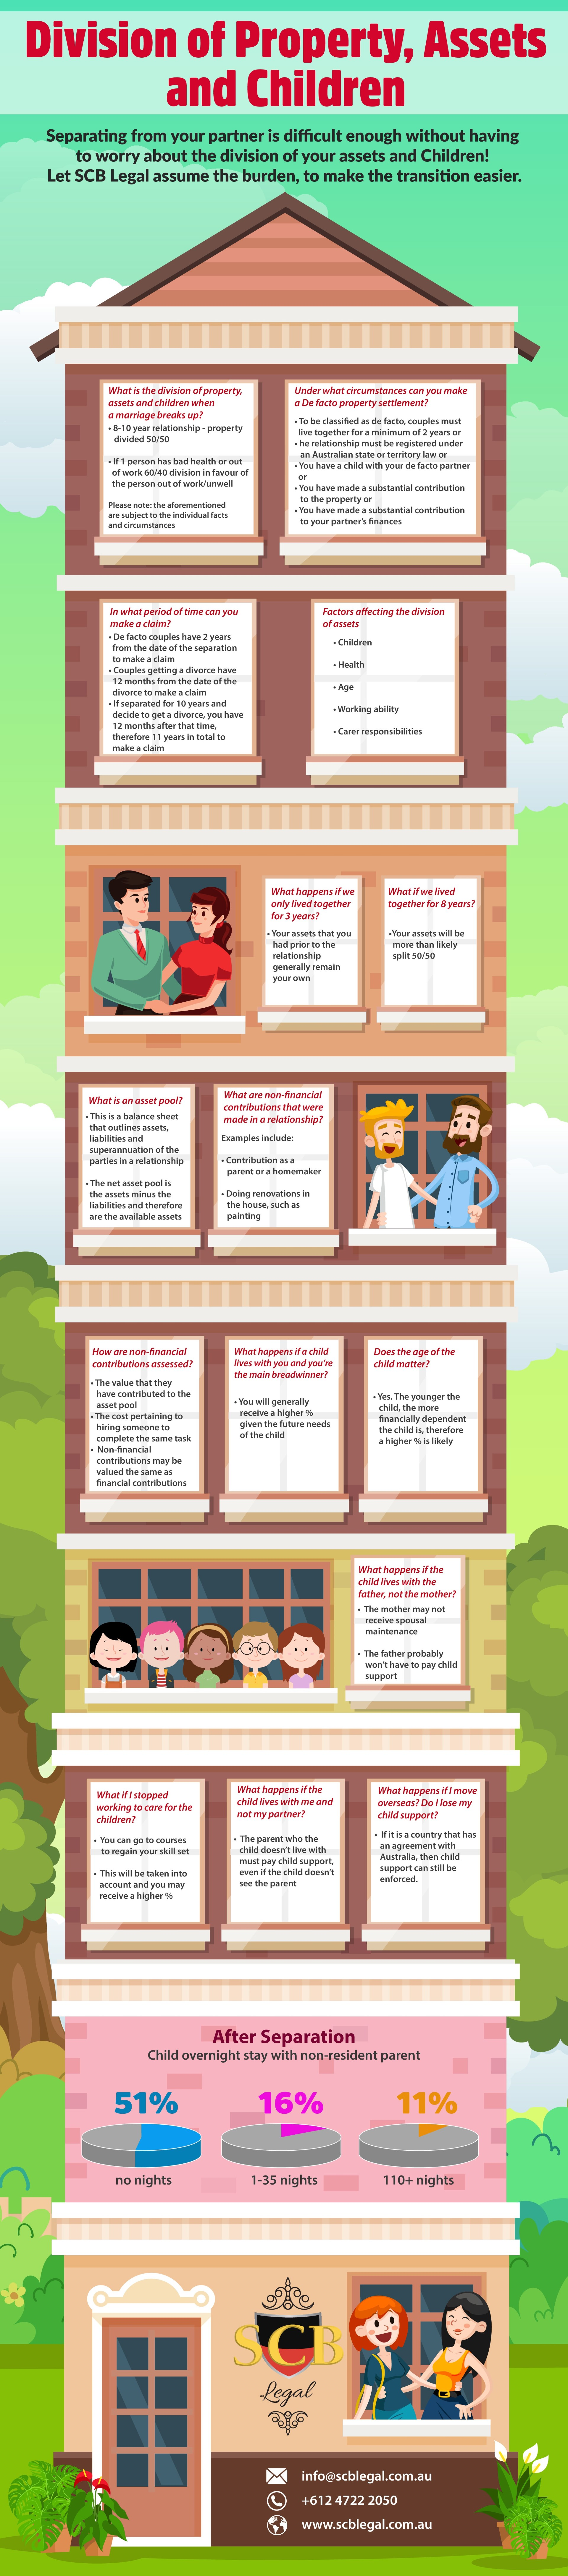 Division of property and assets following divorce infographic